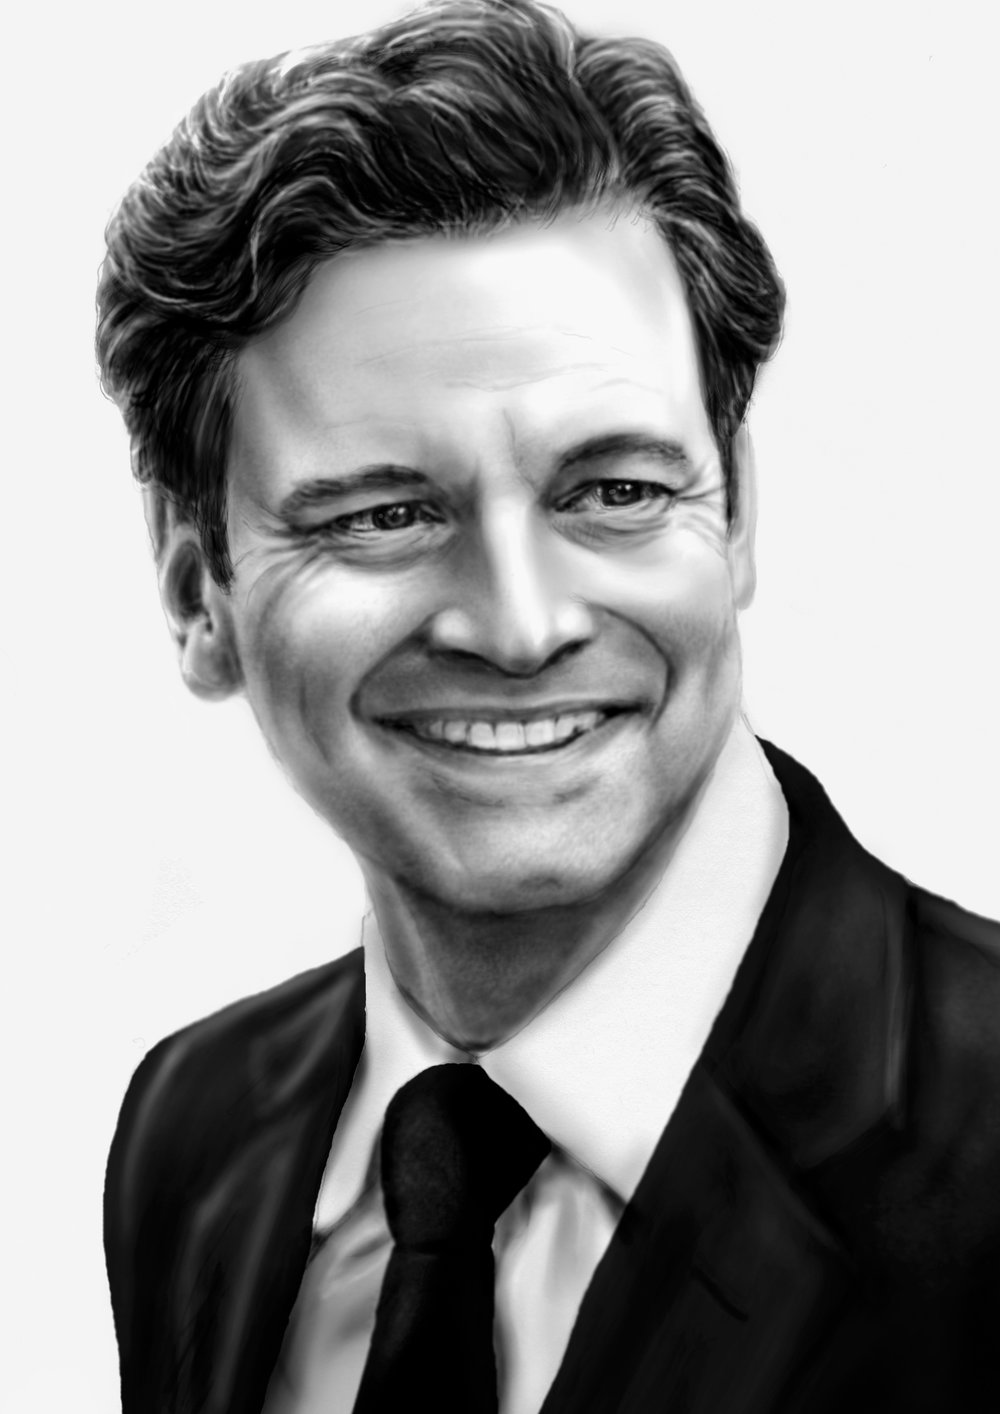 Colin Firth portrait v2.jpg